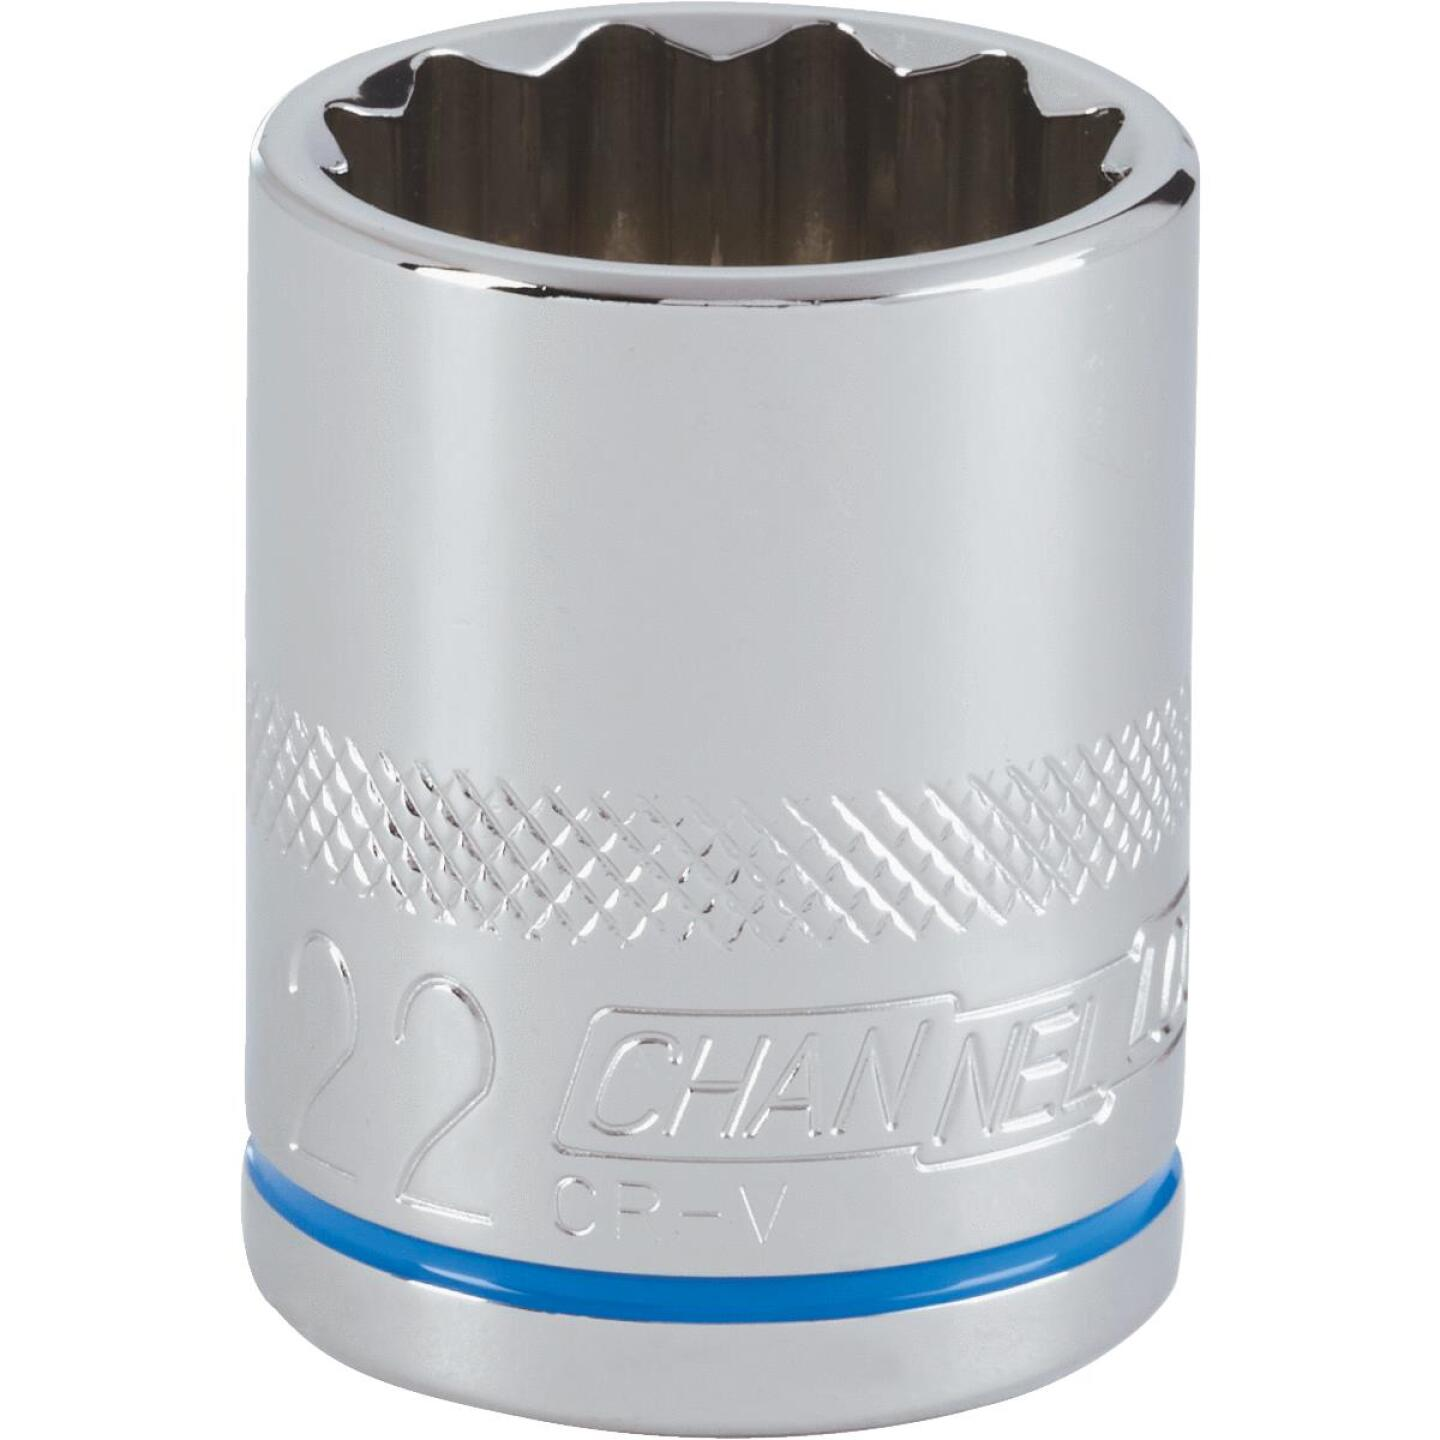 Channellock 1/2 In. Drive 22 mm 12-Point Shallow Metric Socket Image 1